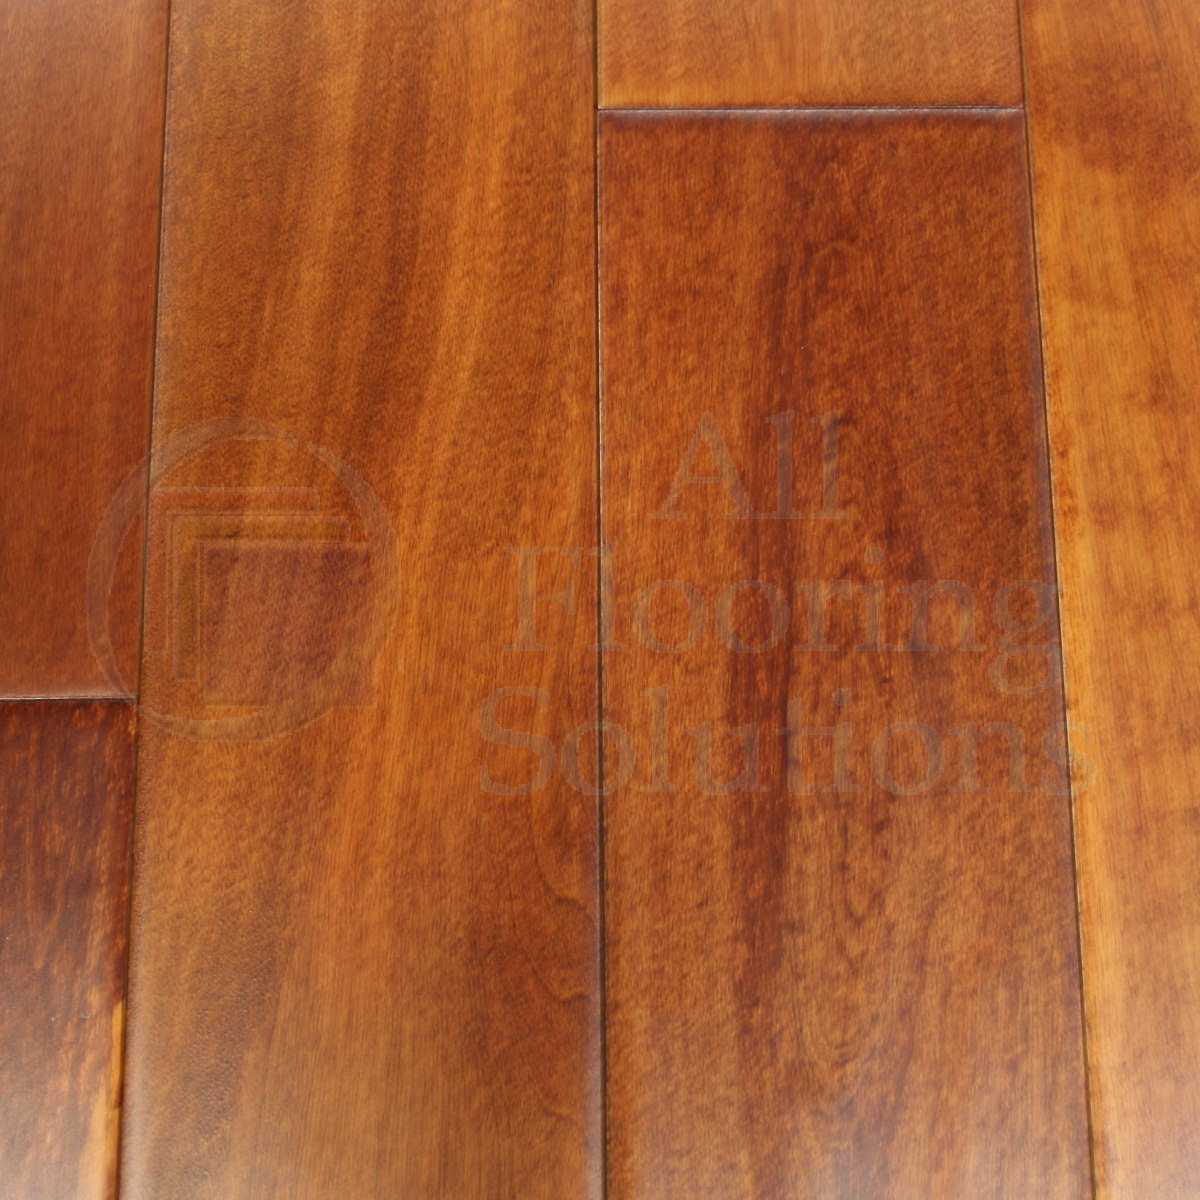 maple hardwood flooring hand scraped of home legend bamboo flooring for home legend hardwood flooring installation instructions flooring